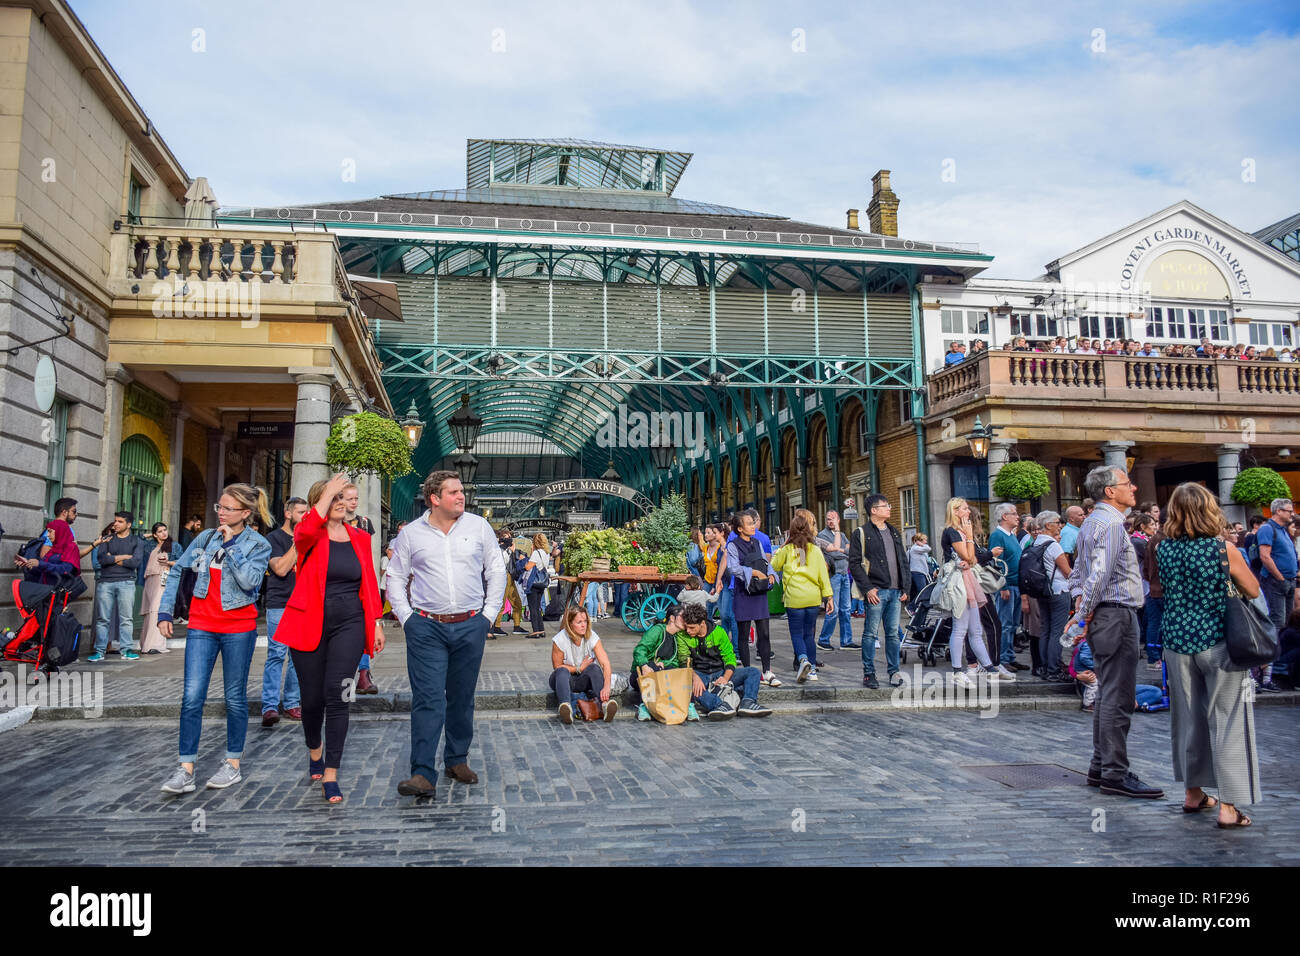 Tourists spending their time at Covent Garden market, one of the most popular shopping and tourist sites in London, United Kingdom - Stock Image